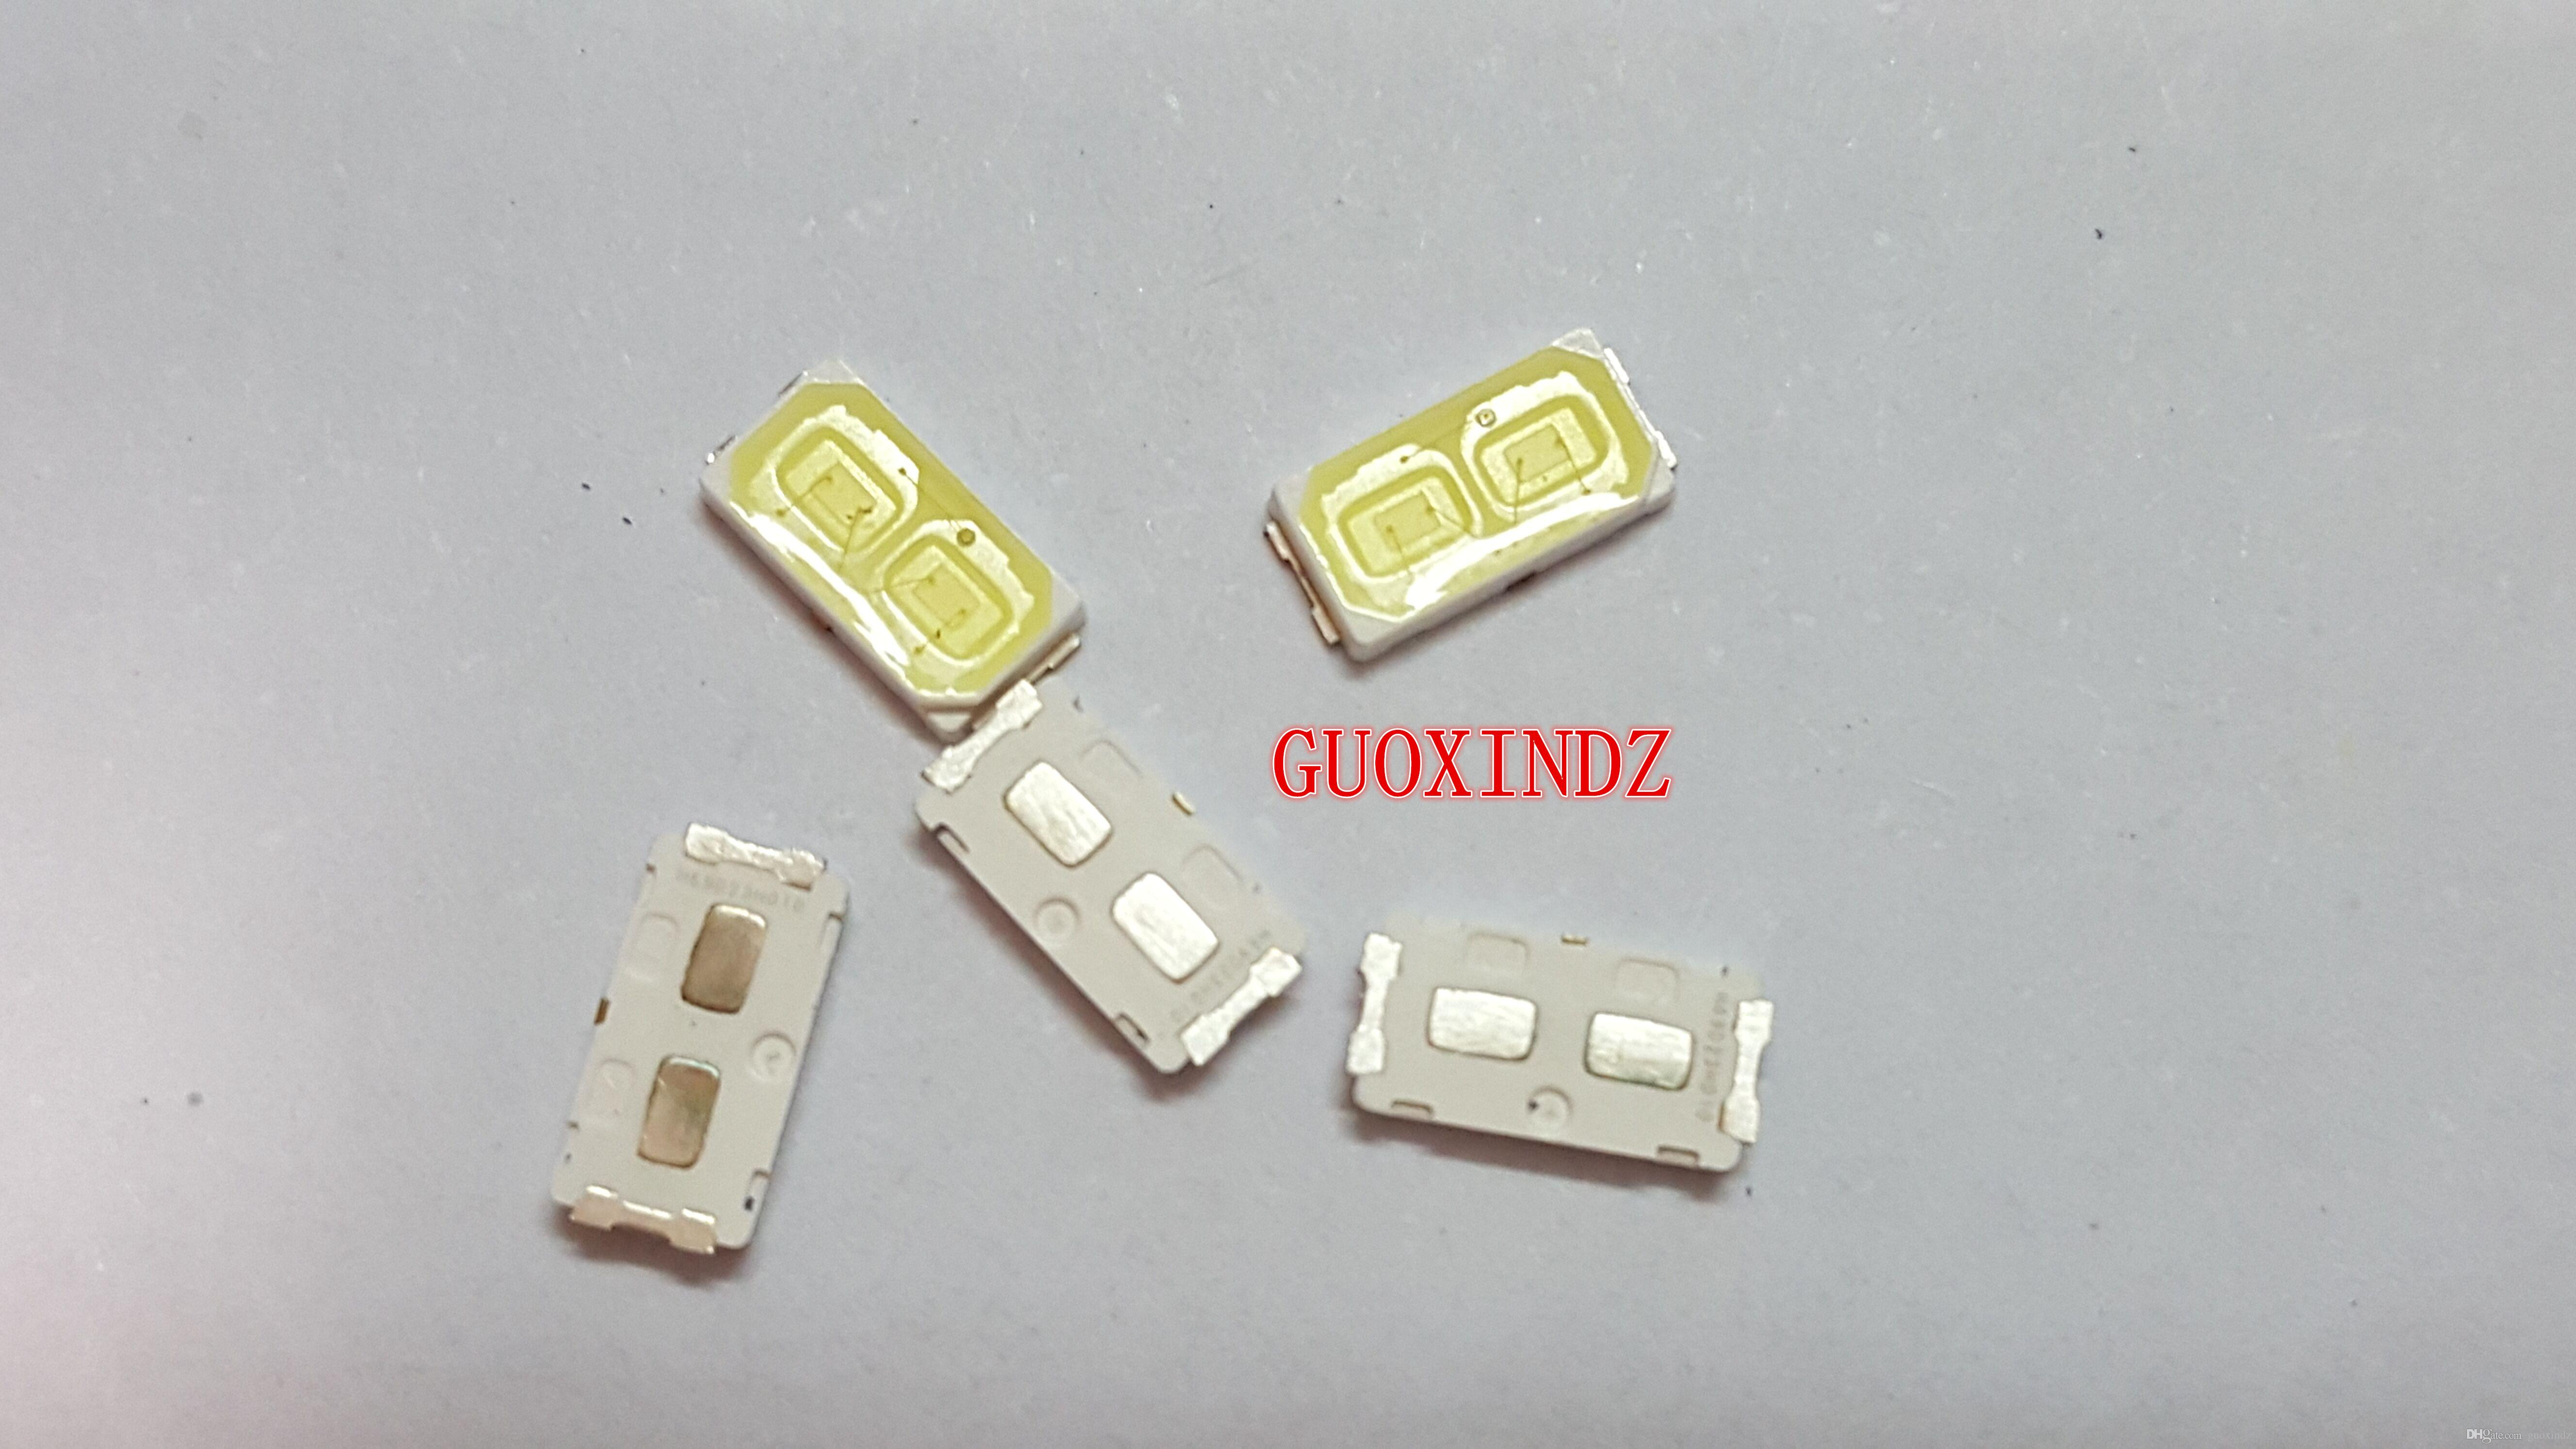 inflow dorcy res replacement bulb light technicalissues lumen global s to p lights led content inflowcomponent ebay volt